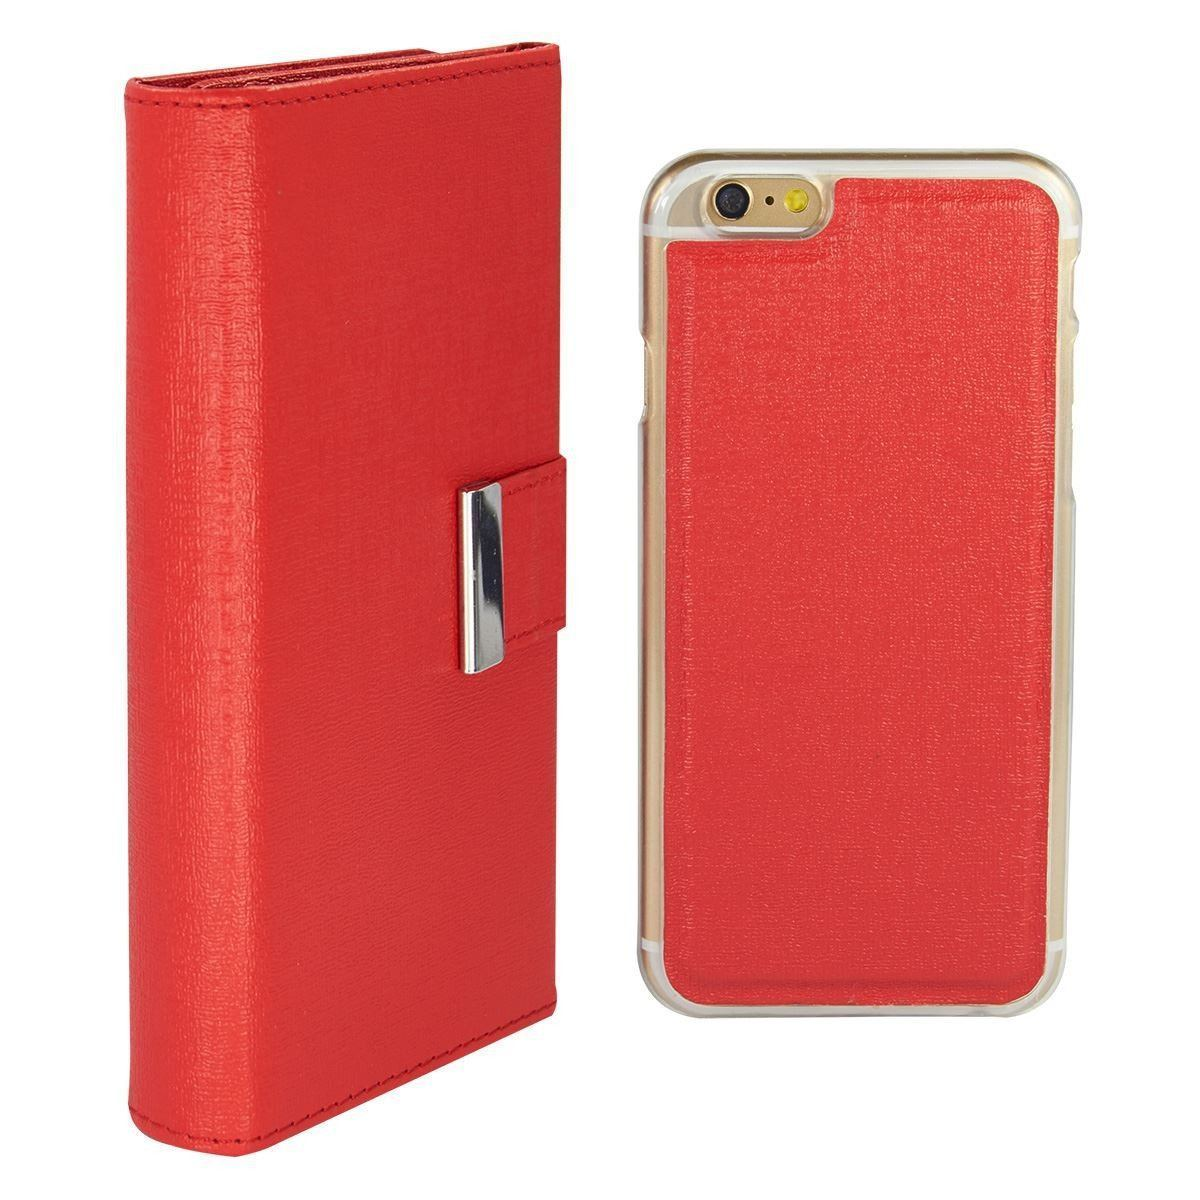 Real Wallet Case for iPhone 7 Plus /8 Plus - Red